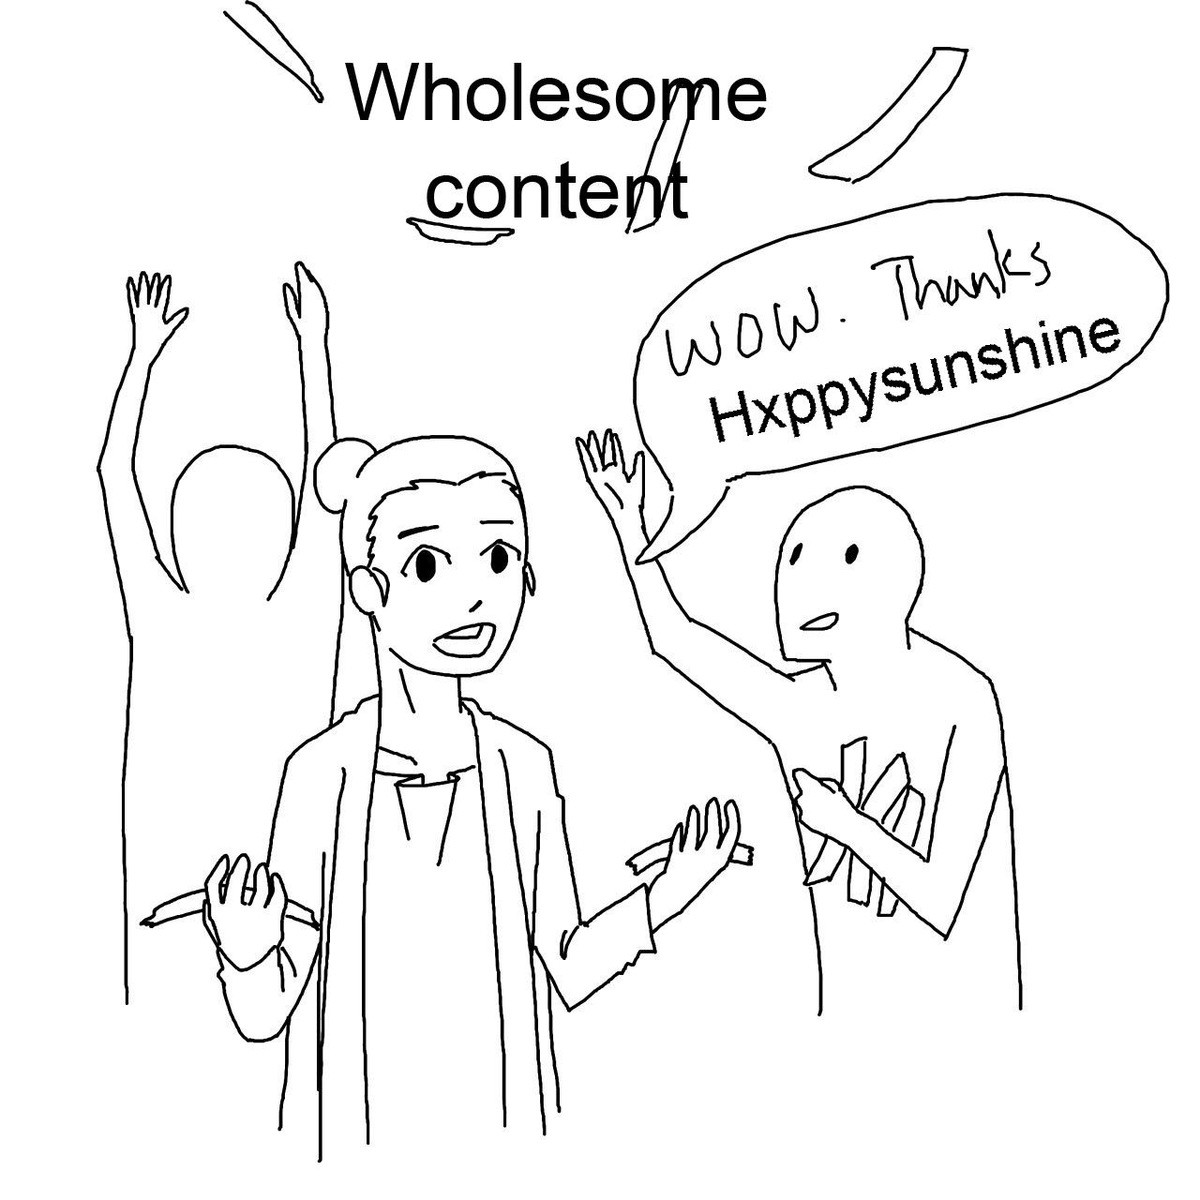 Hxppysunshine. To all the wholesome posters on this site: thank you, you guys bring a lot of smiles and relief to people who might not have a lot of things to r